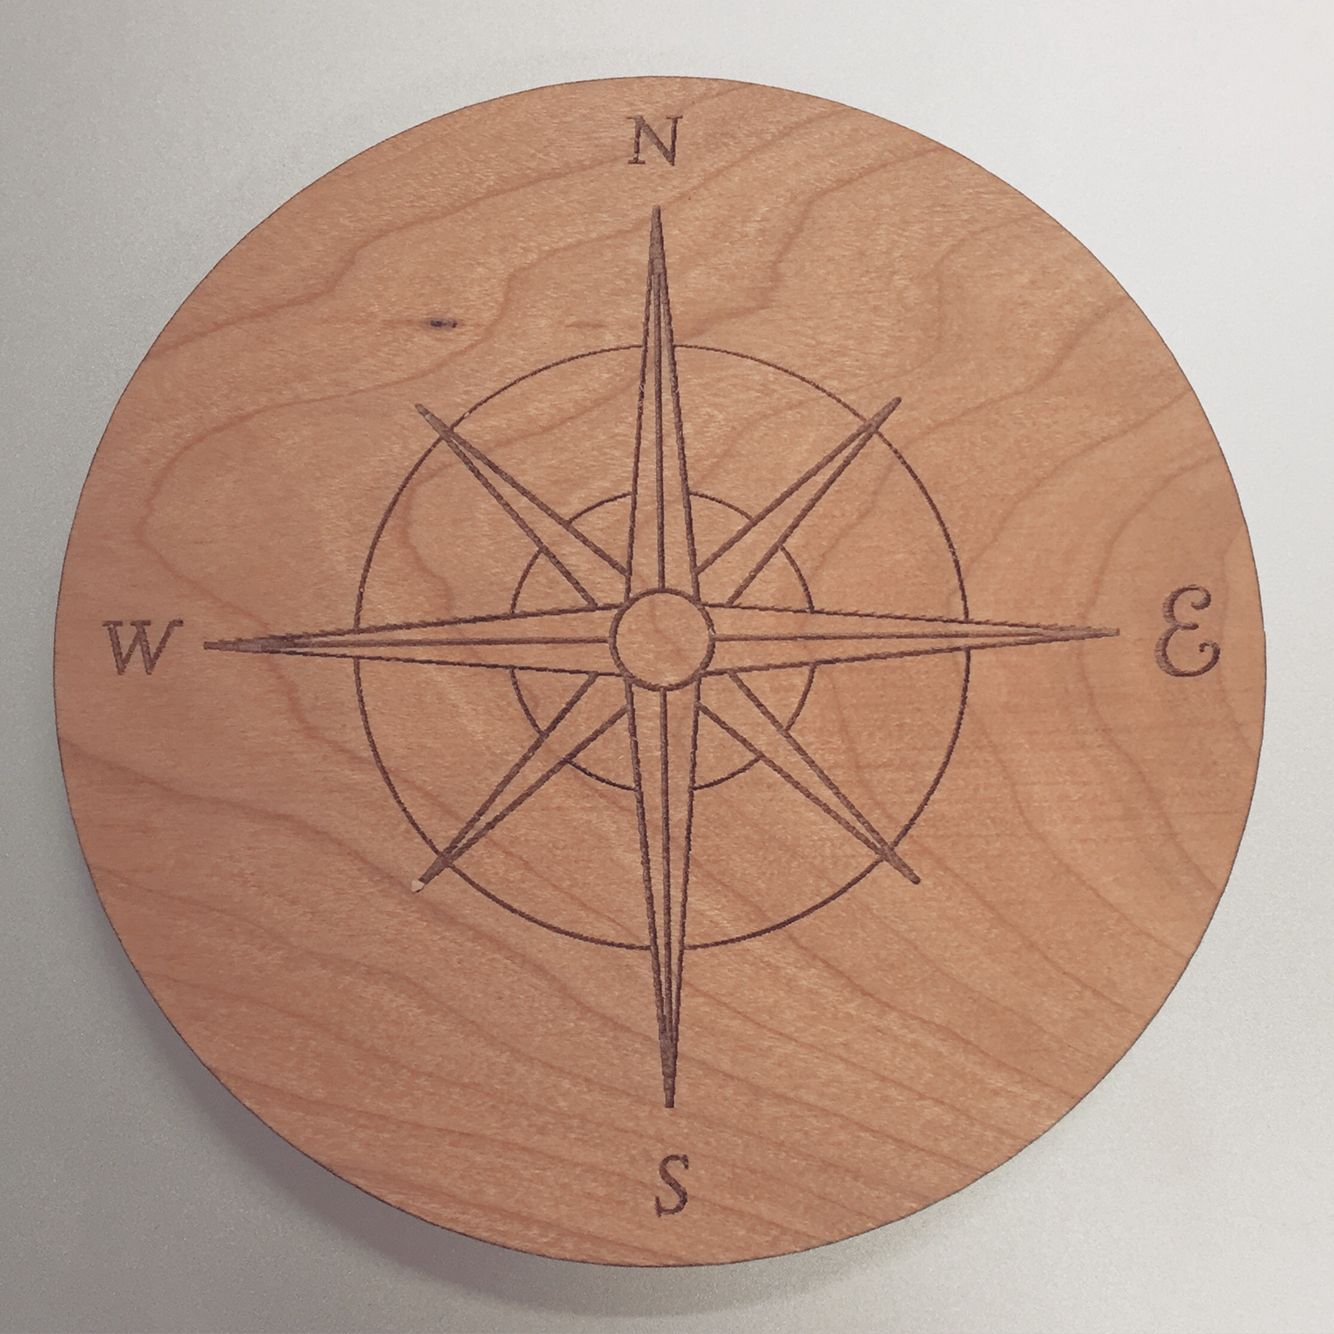 Can't find any coasters that match your decor? Design your own! #coasters #wood #custom #design #compass